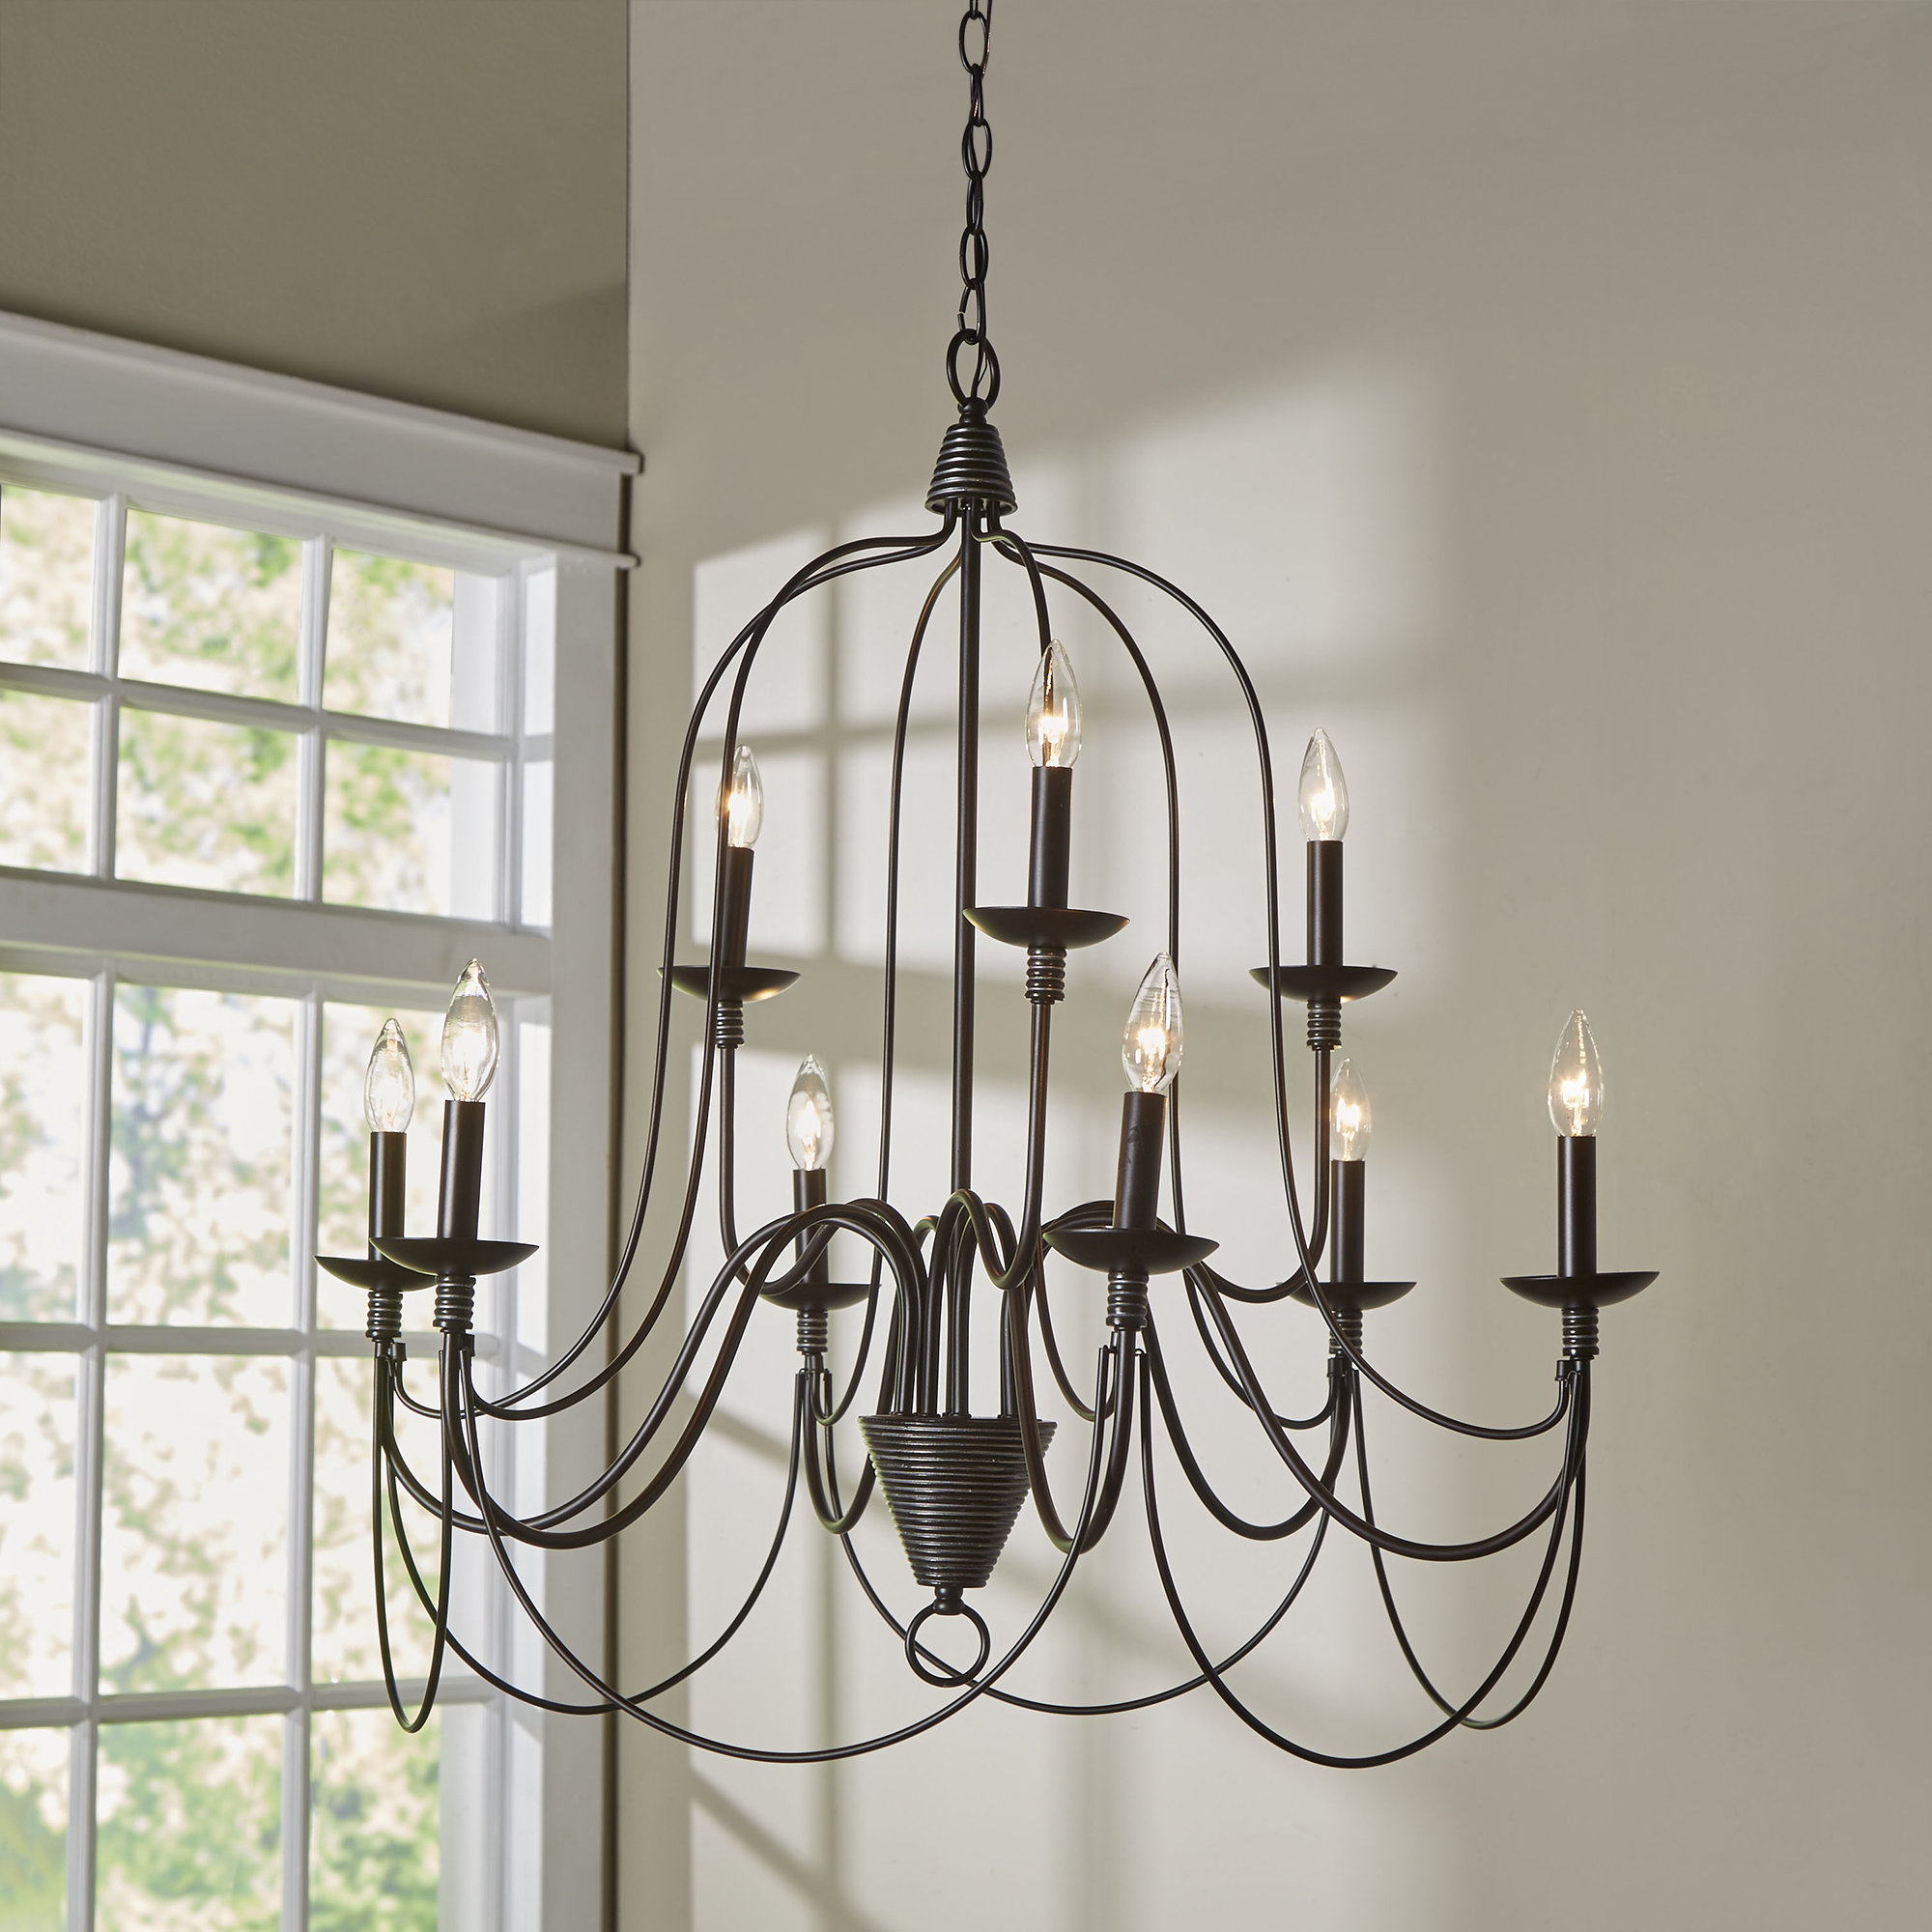 Three Posts Watford 9 Light Candle Style Chandelier Within Gaines 9 Light Candle Style Chandeliers (View 16 of 30)